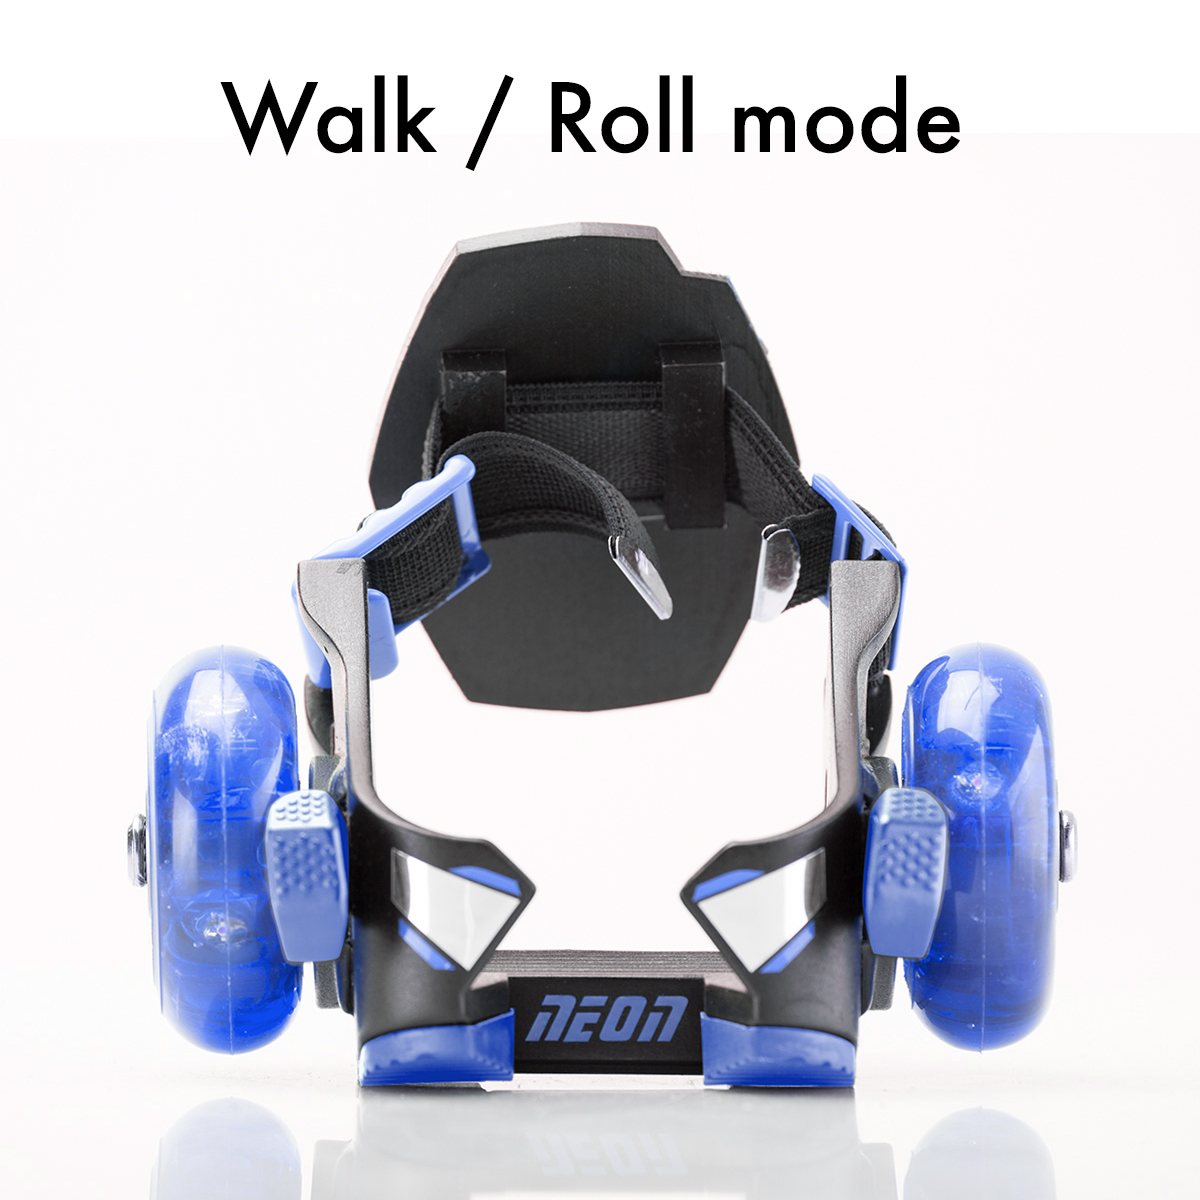 Flick the levers to switch between walking and rolling modes